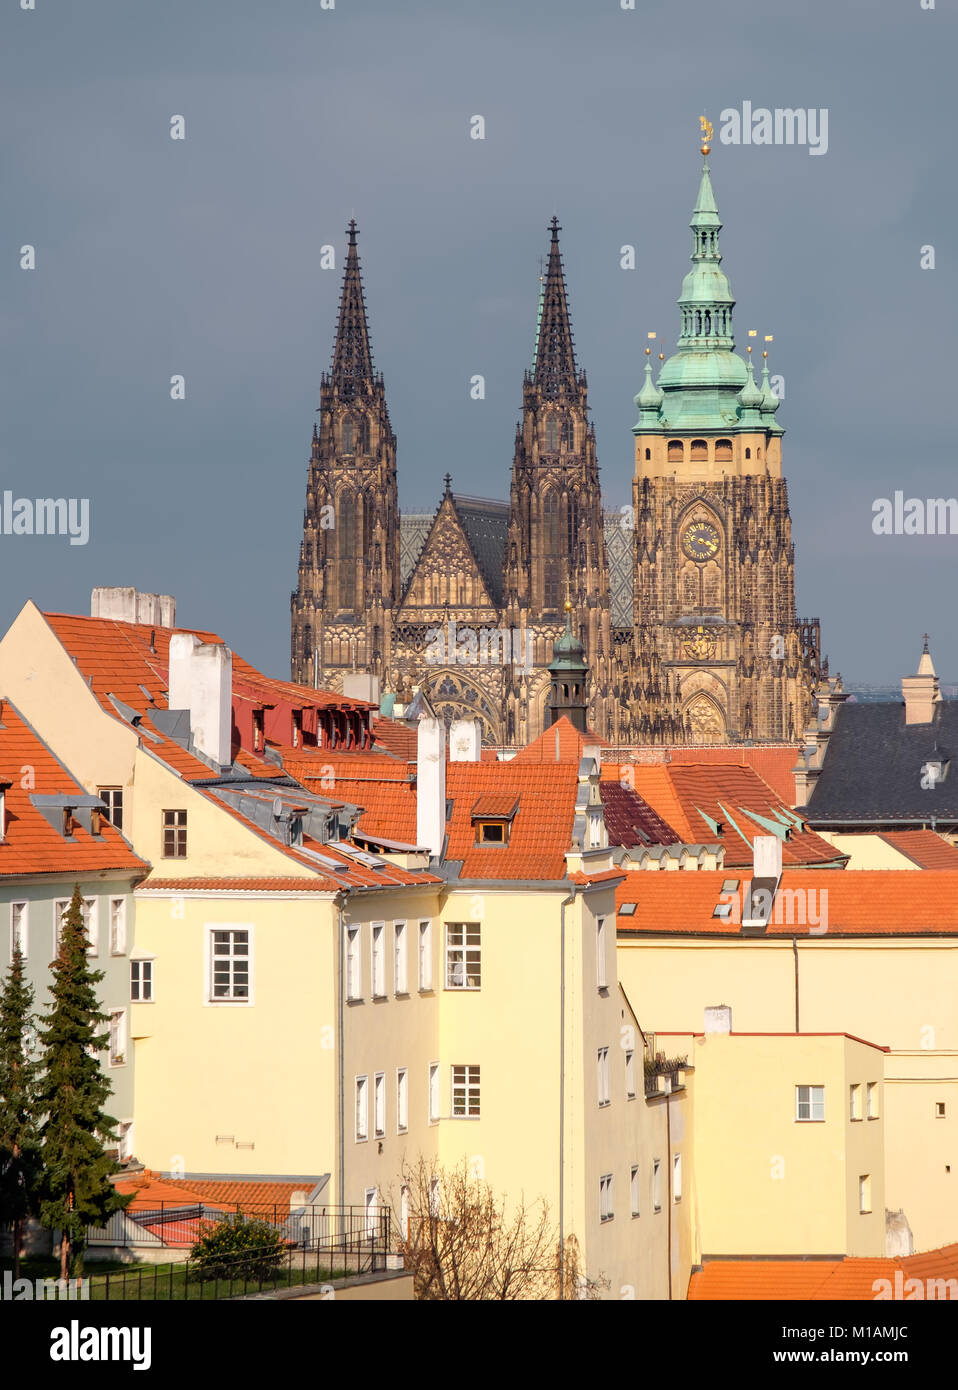 St. Vitus cathedral and roofs of Old Prague with dramatic sky. - Stock Image